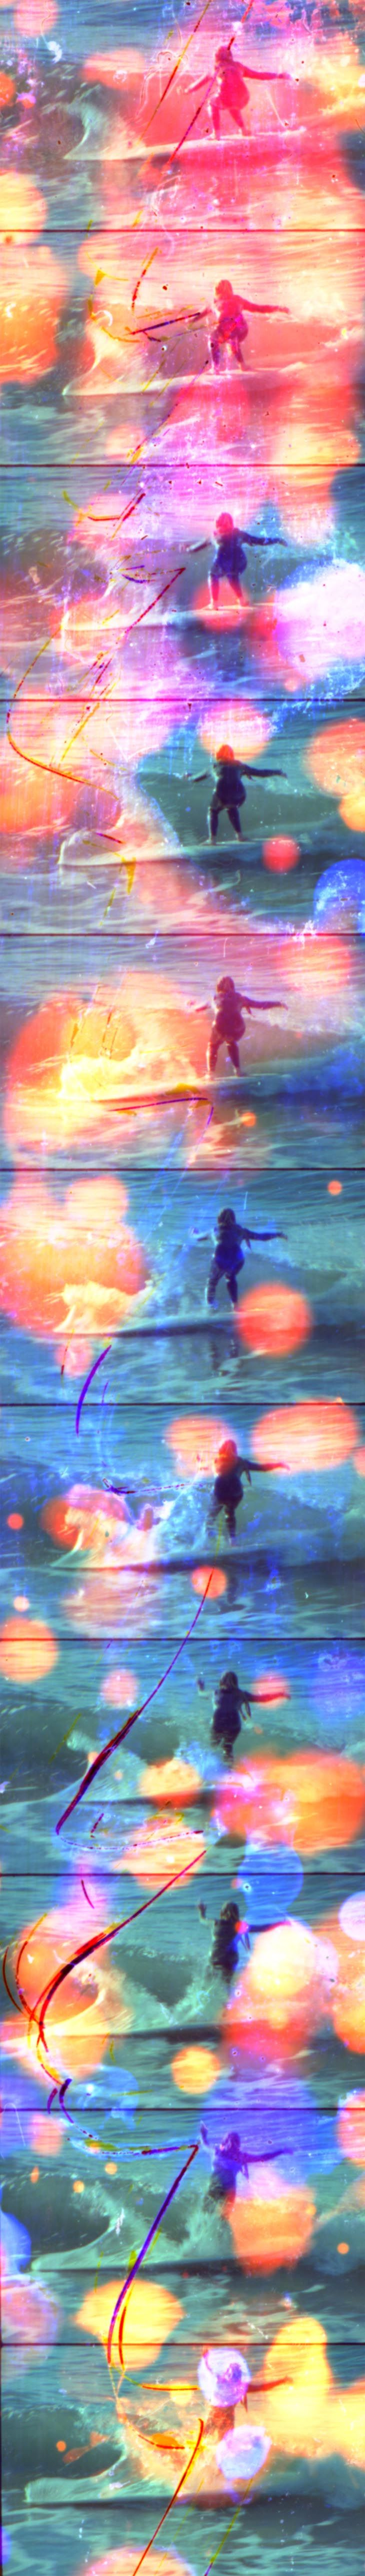 Jennifer West - Dawn Surf Jellybowl Filmstrip 2  2011 Archival inkjet print 221 x 36 cm